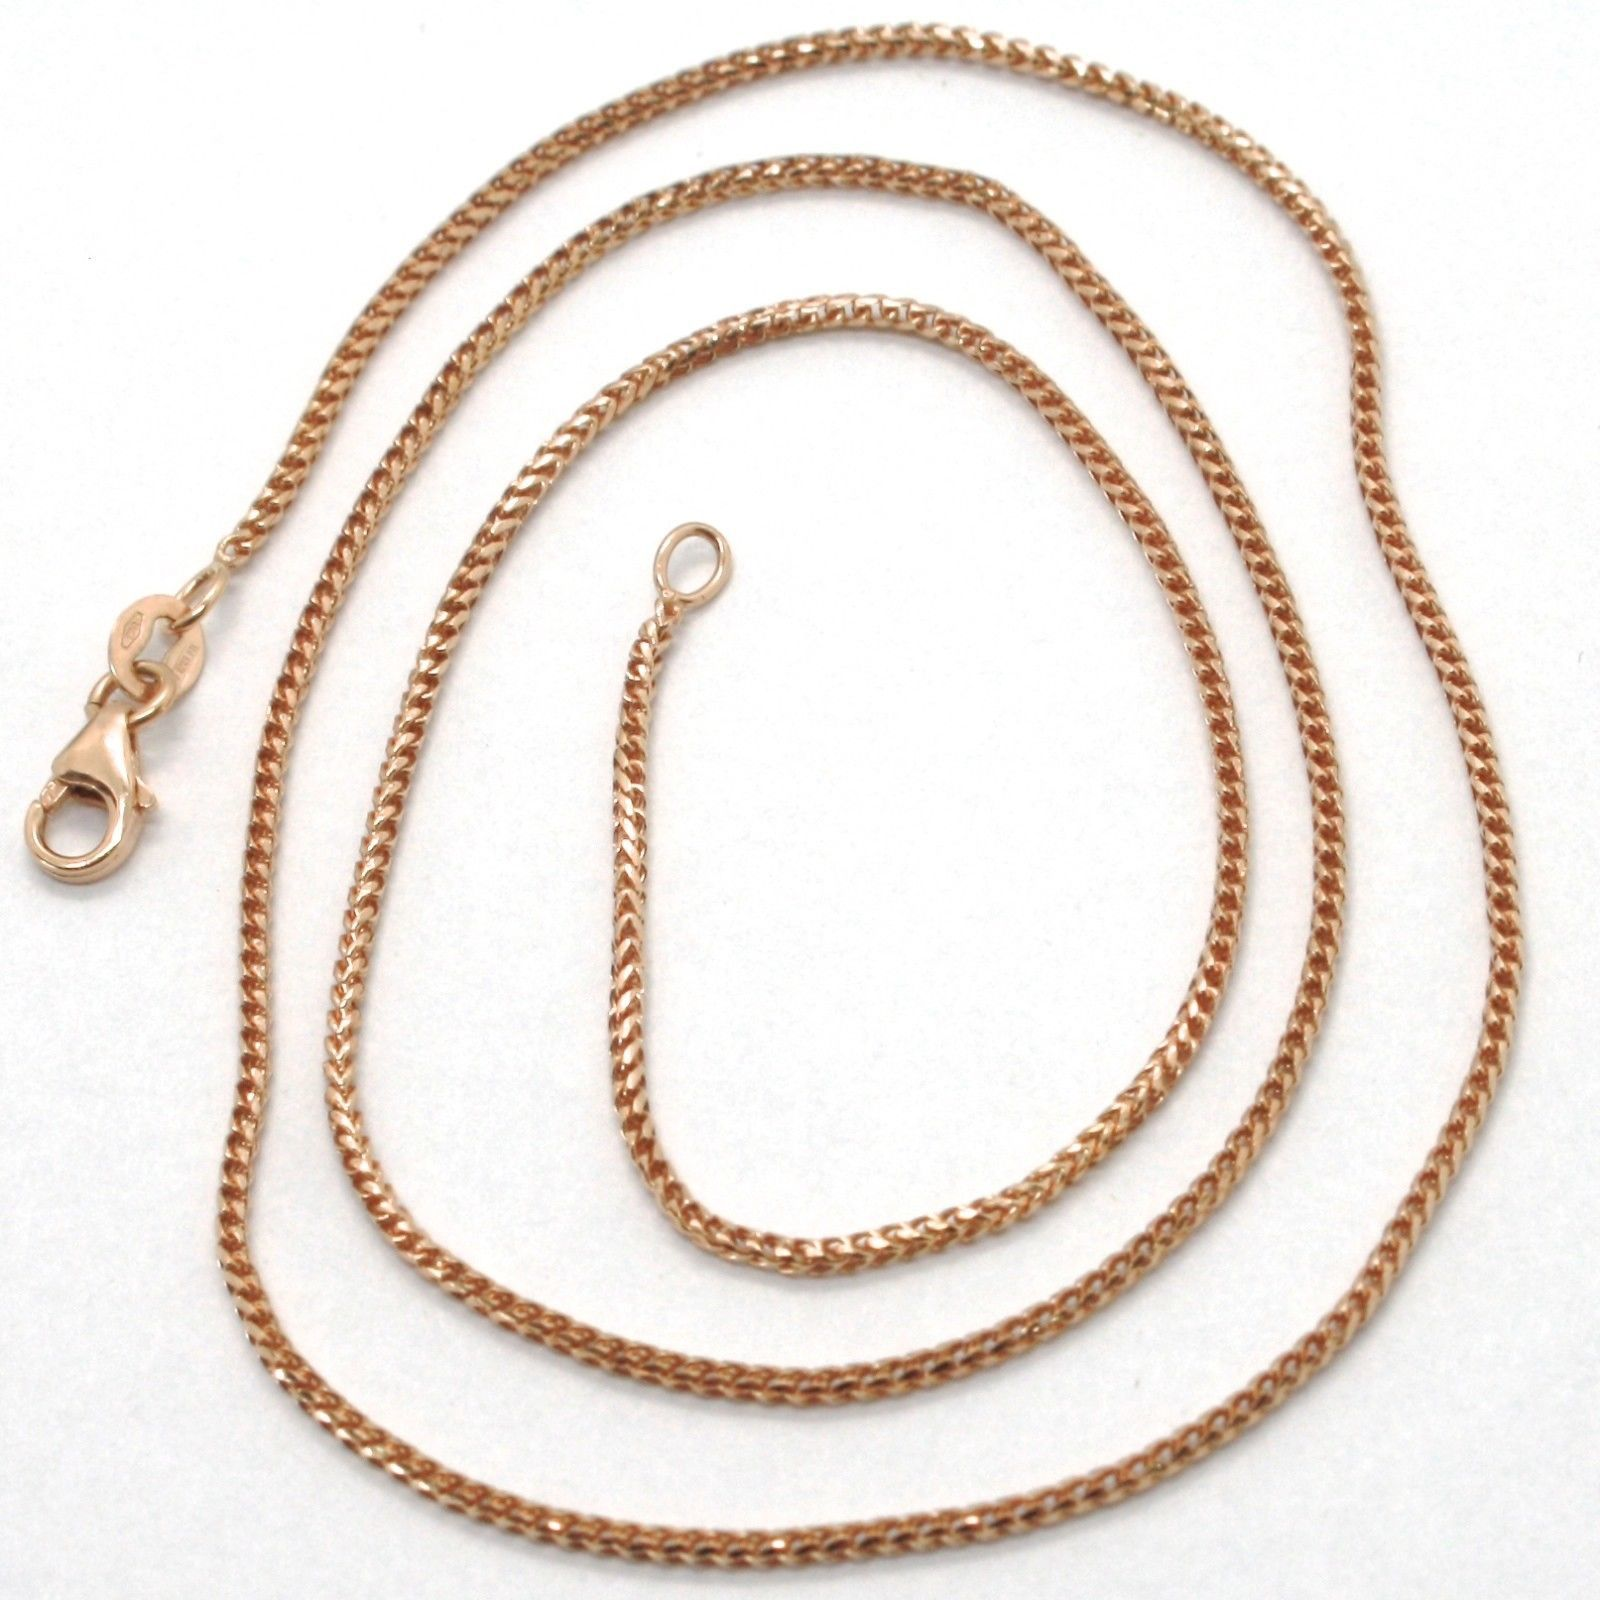 18K ROSE GOLD CHAIN 1.2 MM SQUARE FRANCO LINK, 17.7 INCHES, 45 CM MADE IN ITALY